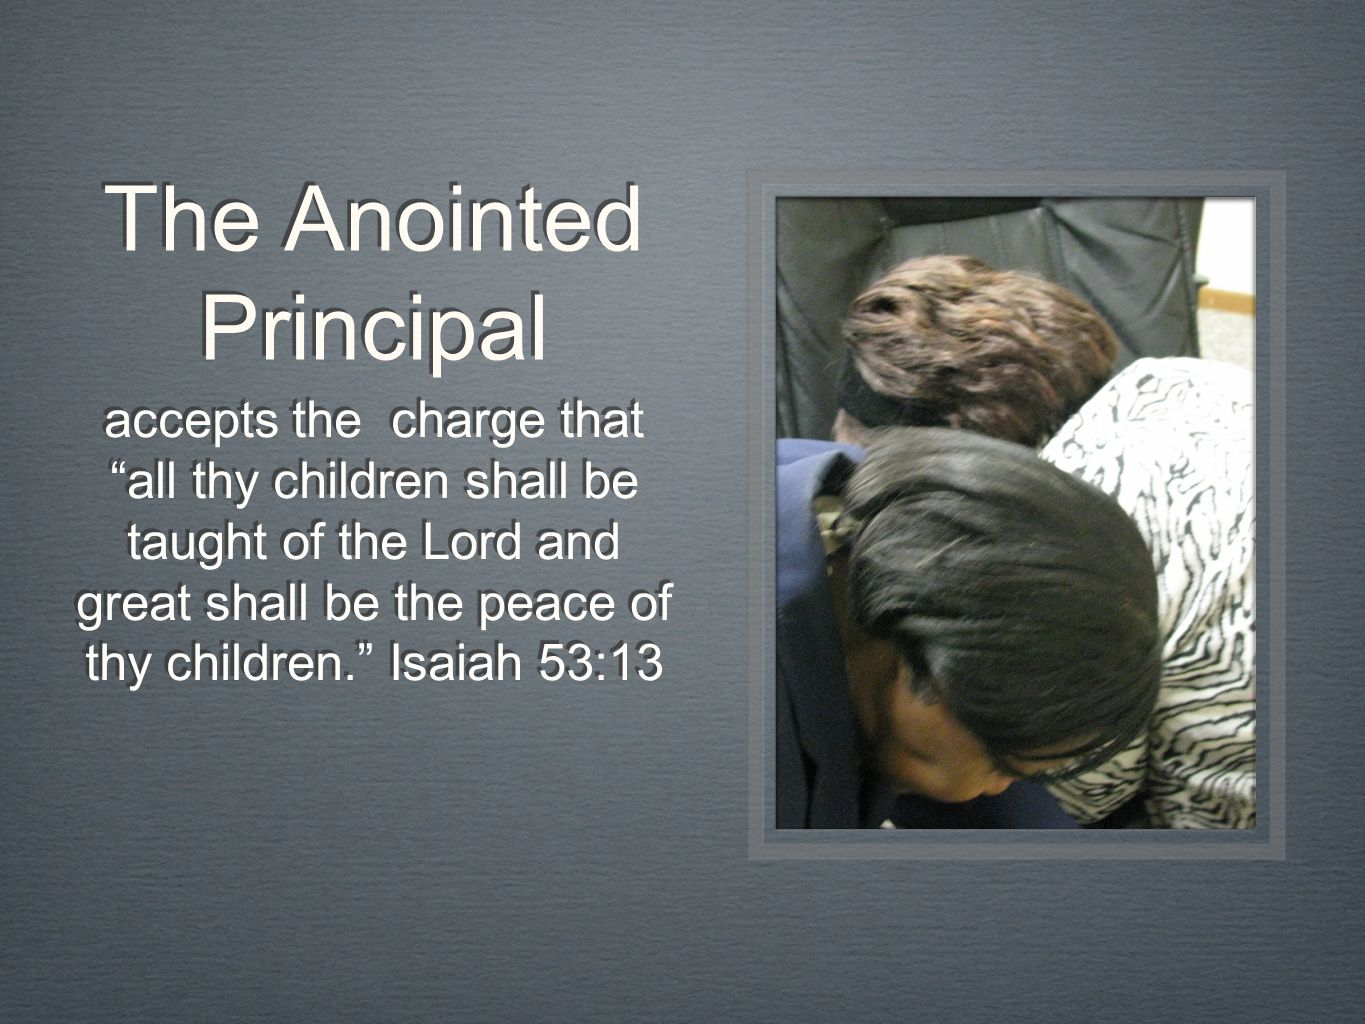 The Anointed Principal